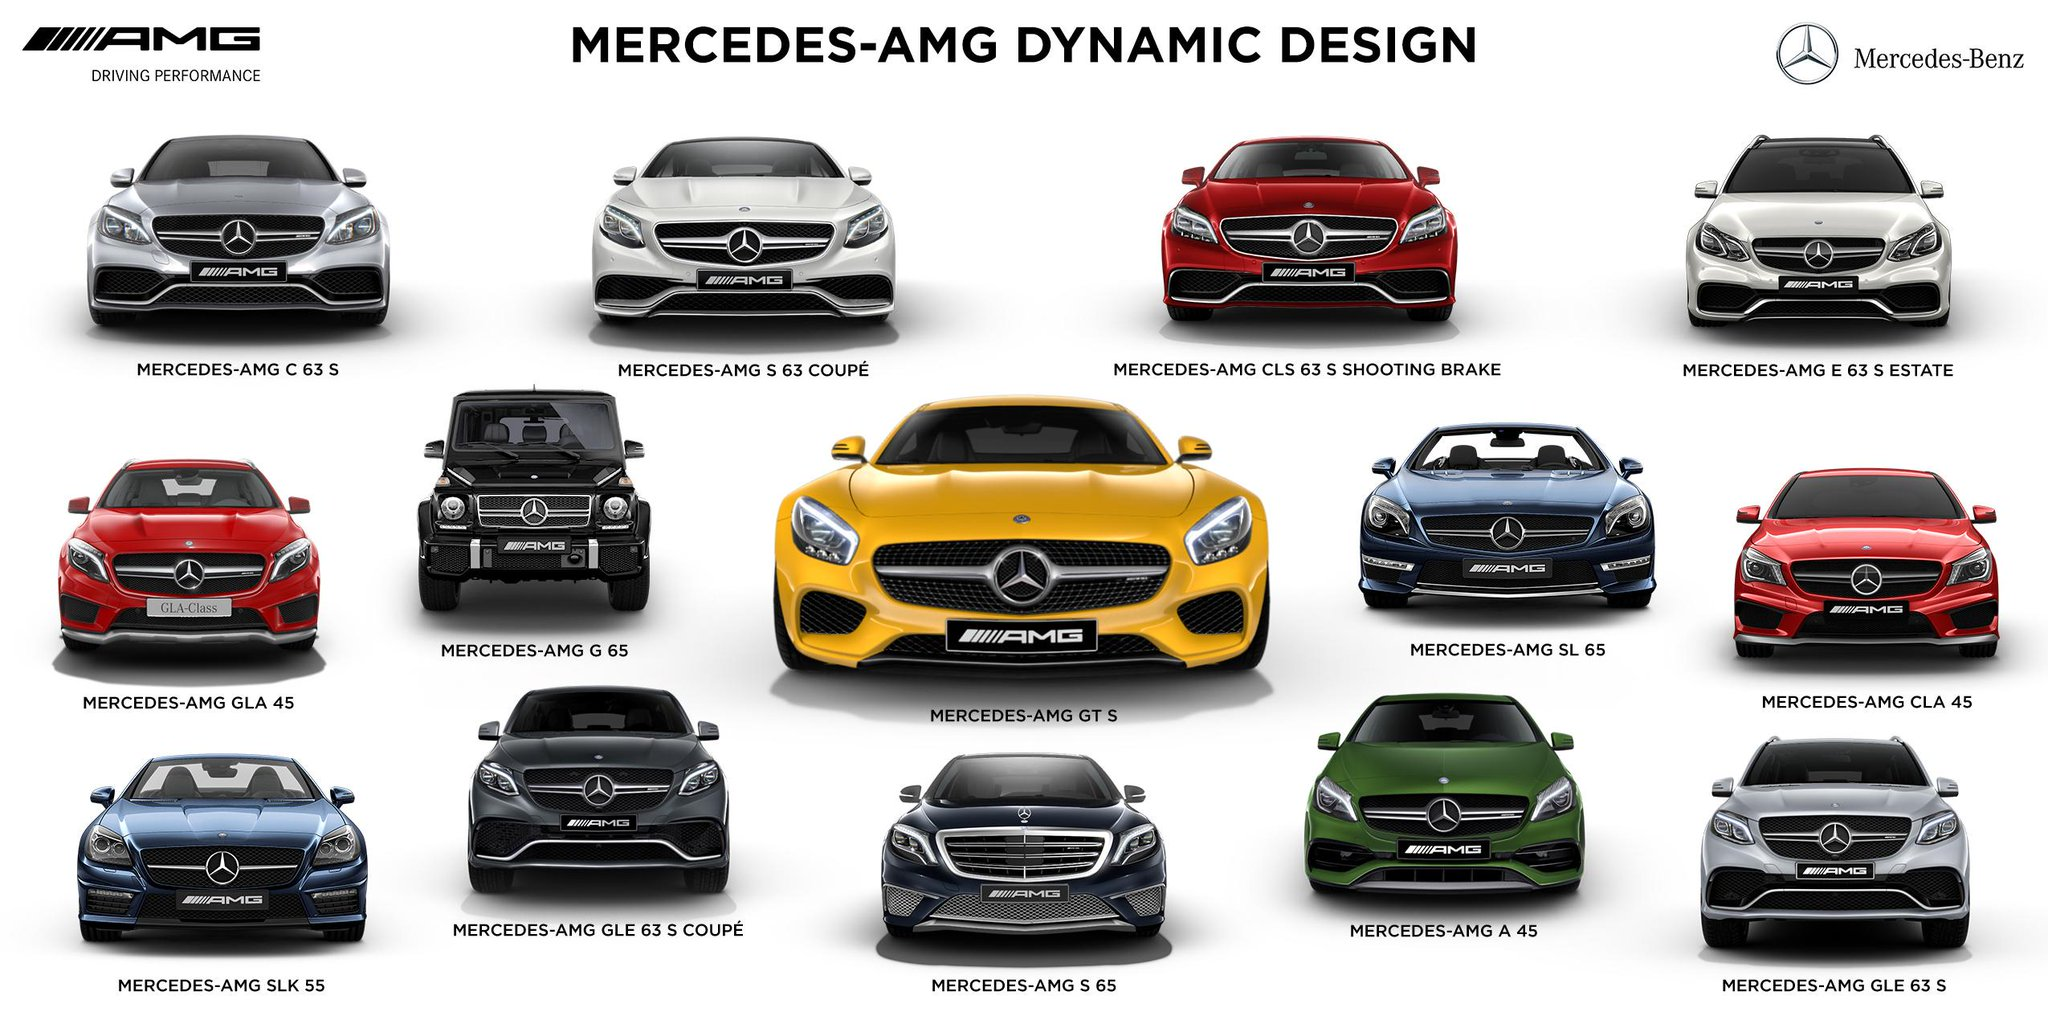 Characteristics of dynamic performance and design starts up front. [Consumption: 7.1-17.0 l/100km   CO2: 165-397g/km] http://t.co/rVNKUU2FRi